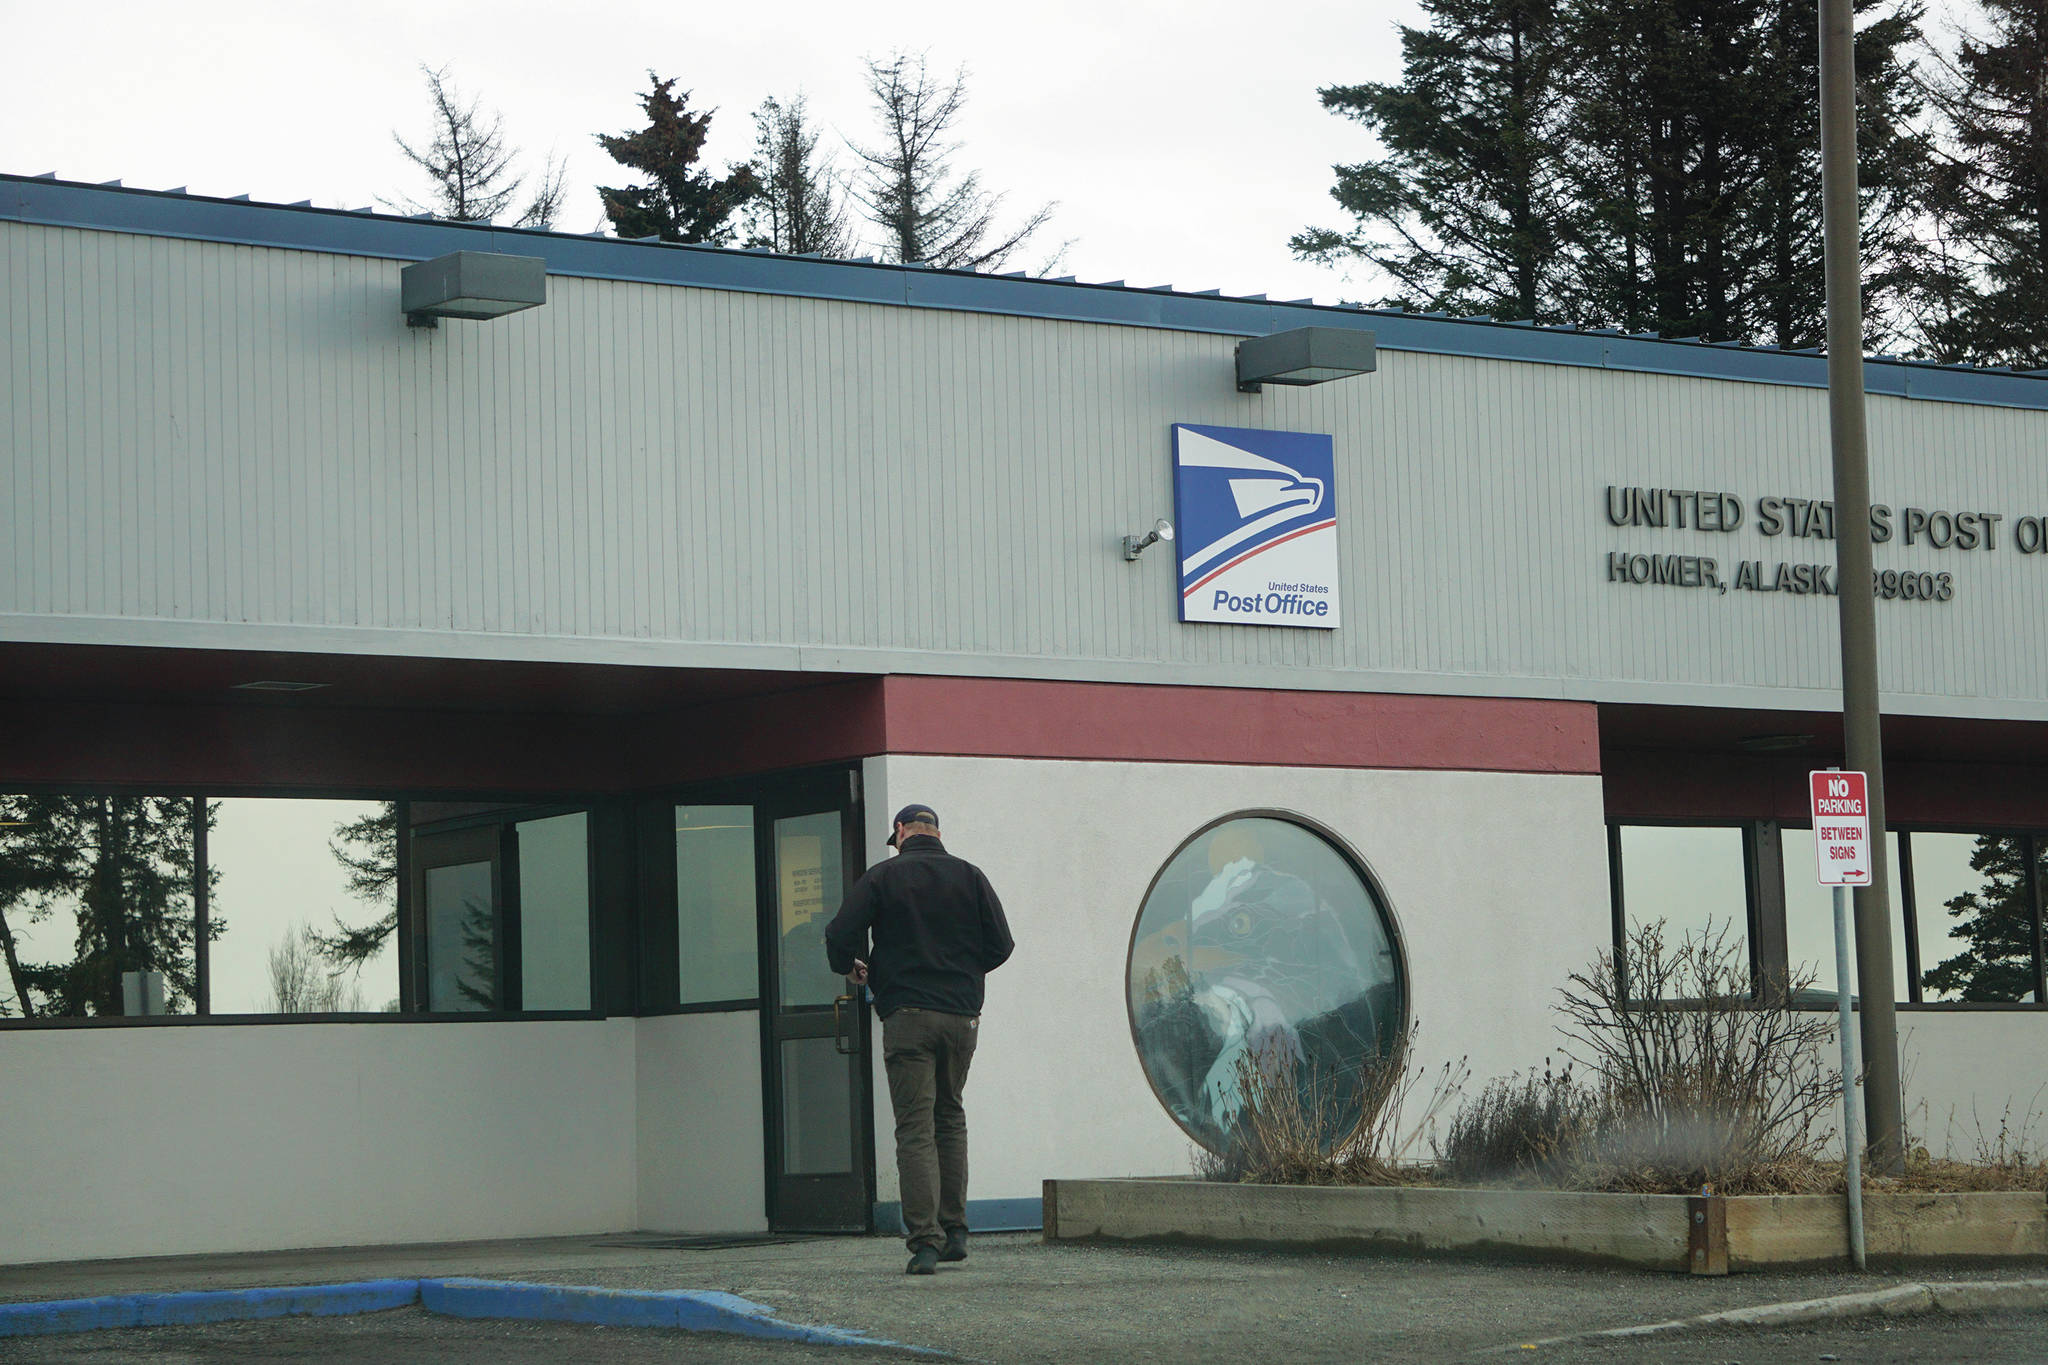 A man enters the Homer Post Office on Thursday, Jan. 21, 2021, in Homer, Alaska. On Jan. 20, 2021, President Joe Biden issued an executive order directing that federal employees and people in federal buildings should all wear masks. (Photo by Michael Armstrong/Homer News)